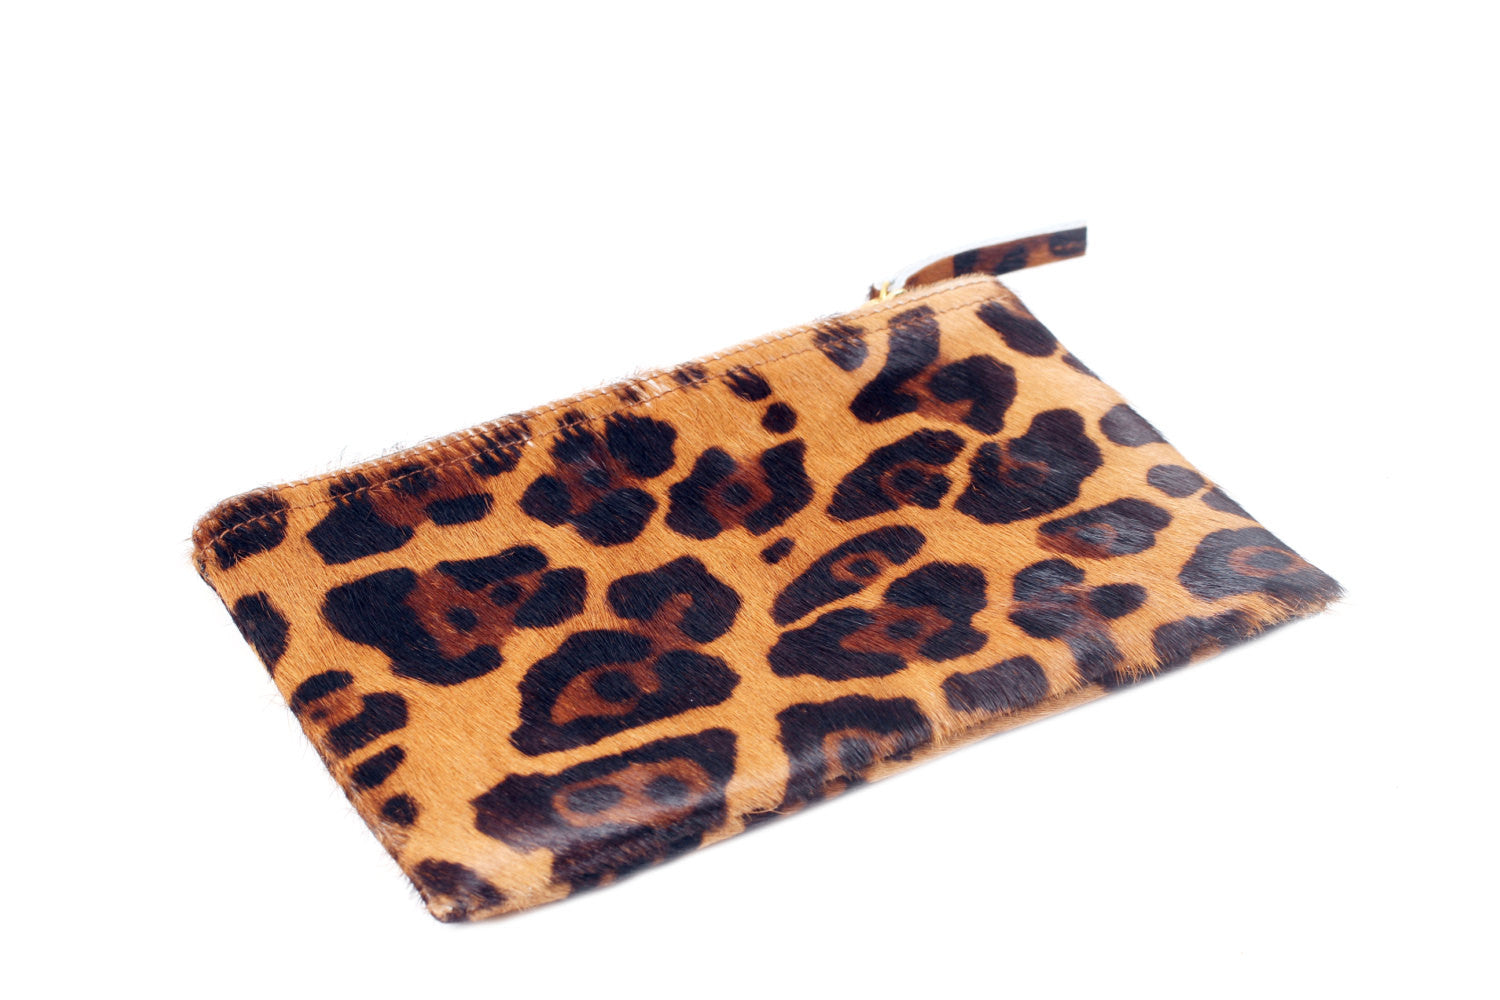 Women's Handbags; Wallet Clutch; Calf Hair clutch purse; Wallet Clutch for Women; Wallet Clutch handbag; leopard clutch purse; mini purses; purse for bag essentials